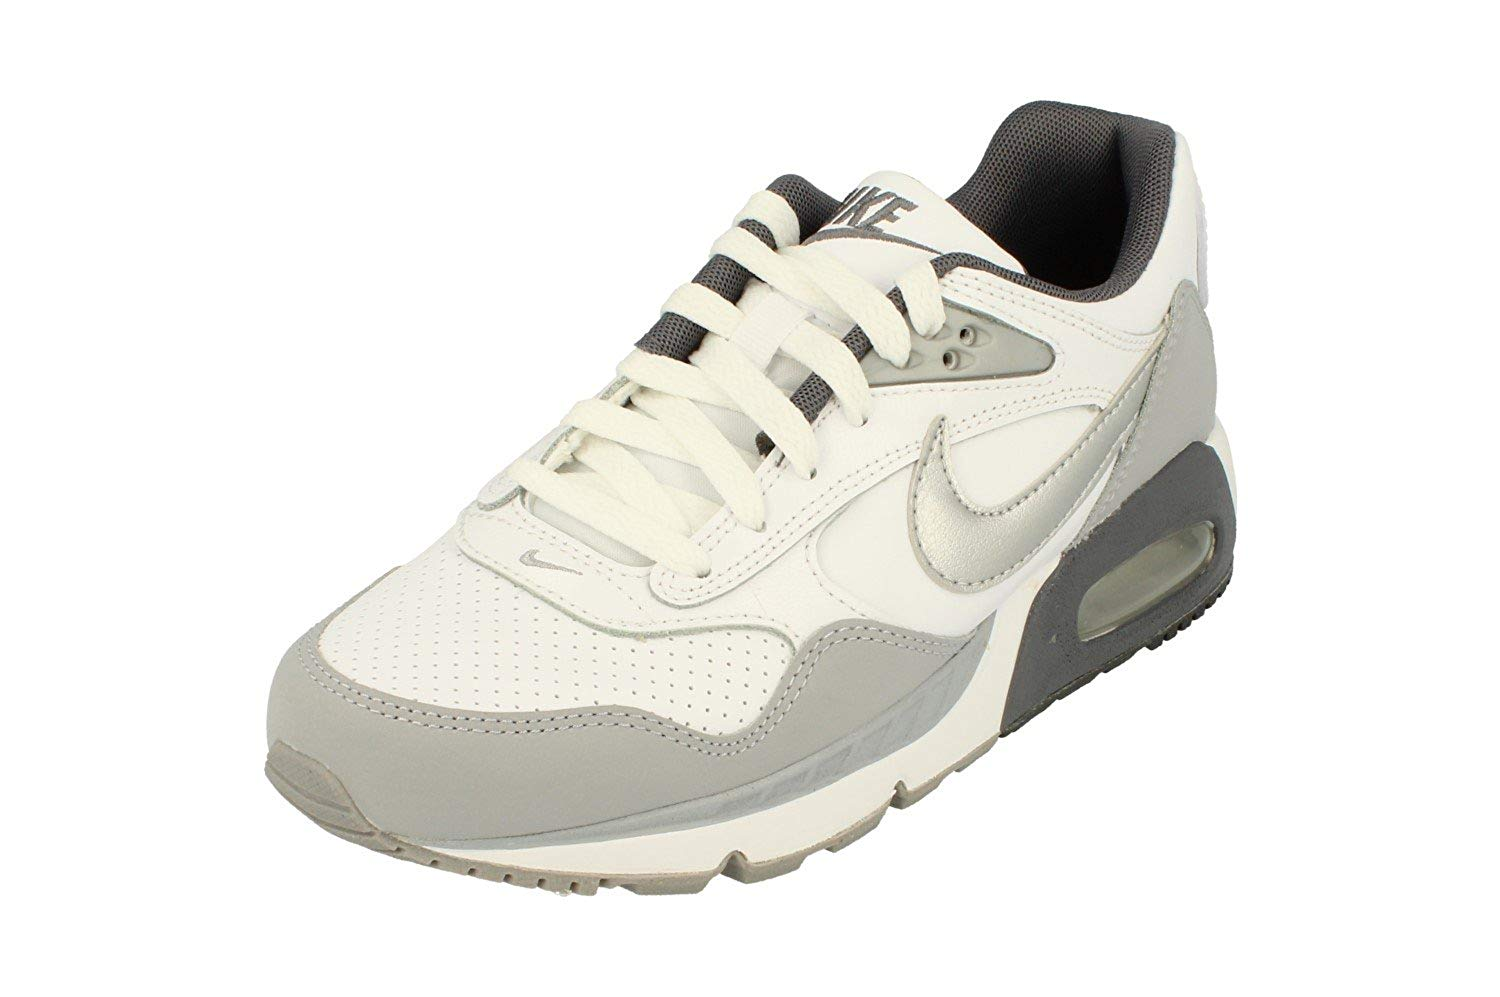 buy popular 0eed6 980fc Nike Womens Air Max Correlate LTR Running Trainers 525381 Sneakers Shoes